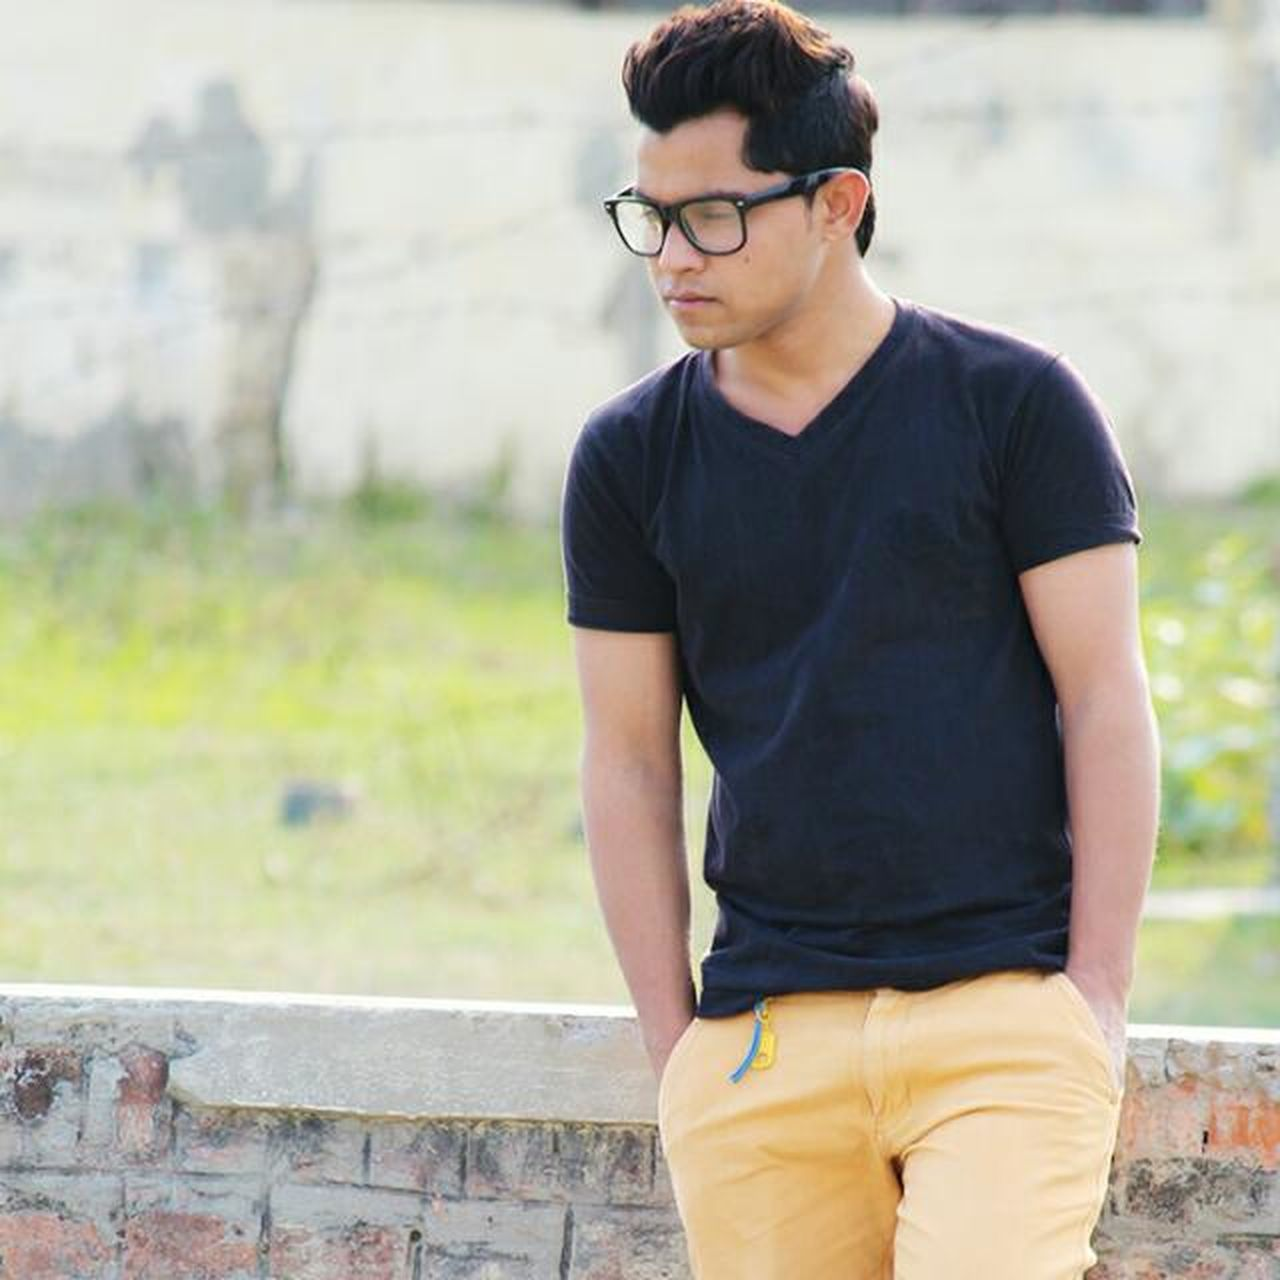 one person, casual clothing, eyeglasses, one man only, young adult, only men, young men, outdoors, standing, real people, one young man only, day, candid, adult, people, men, adults only